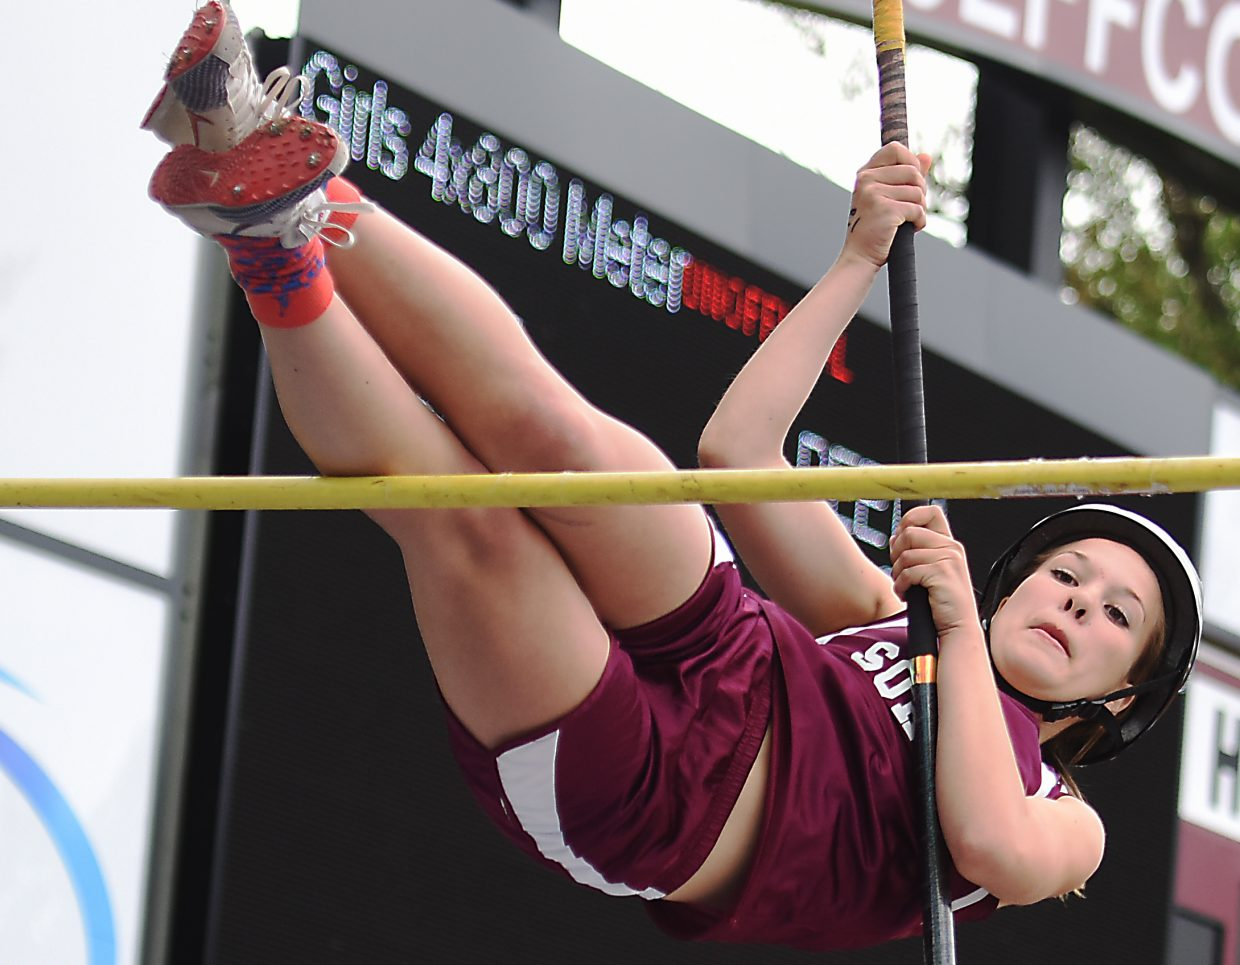 Kali Constine tries to get over the bar in pole vault at the Class 2A state track meet in Lakewood.